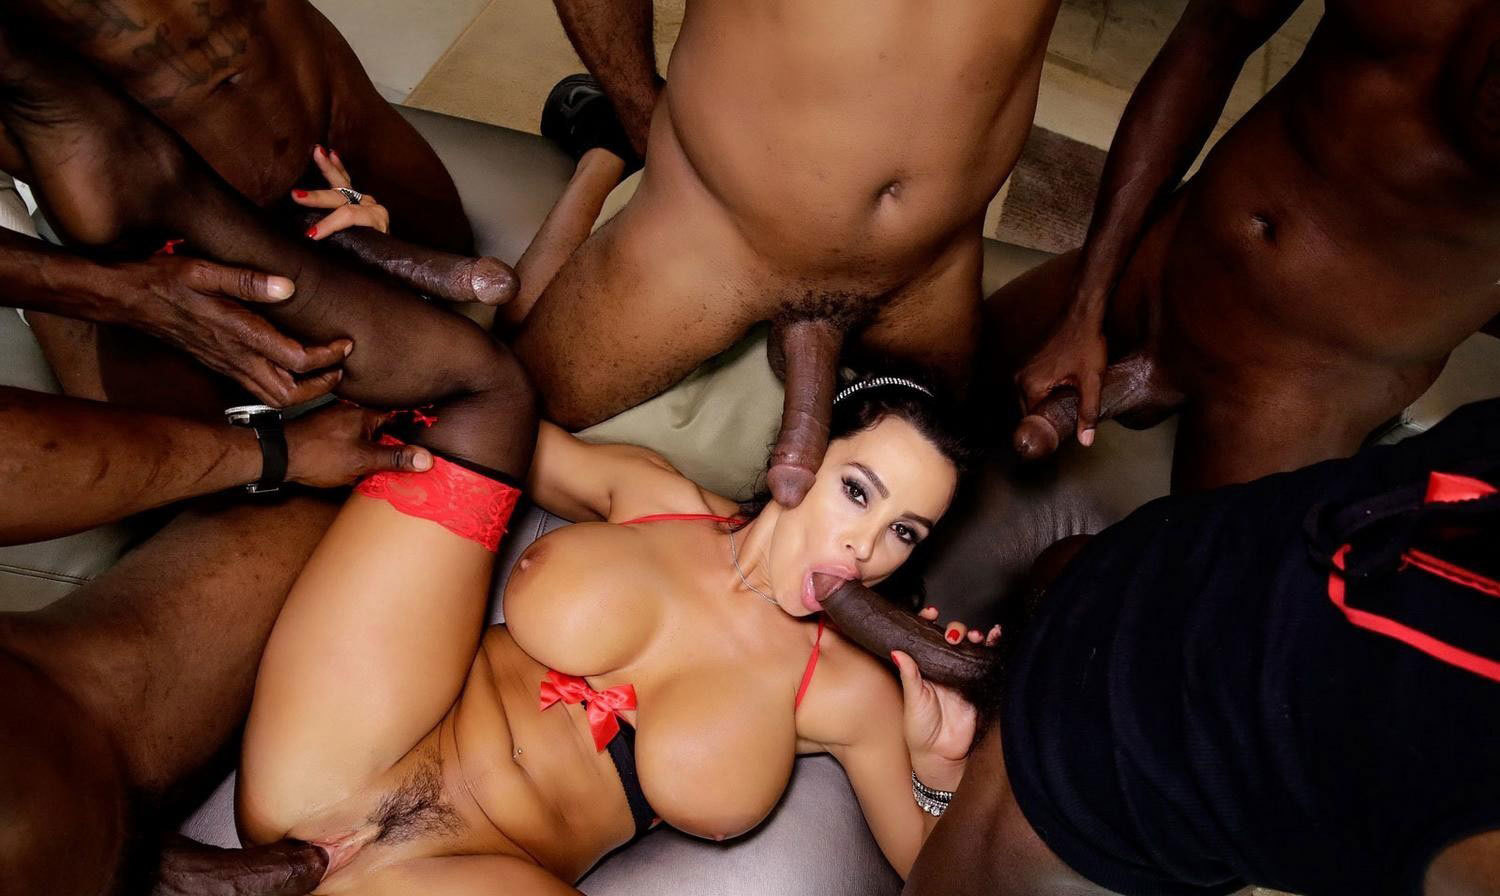 free-long-movies-pornstar-fucks-gangbang-asian-woman-in-pantyhose-masturbates